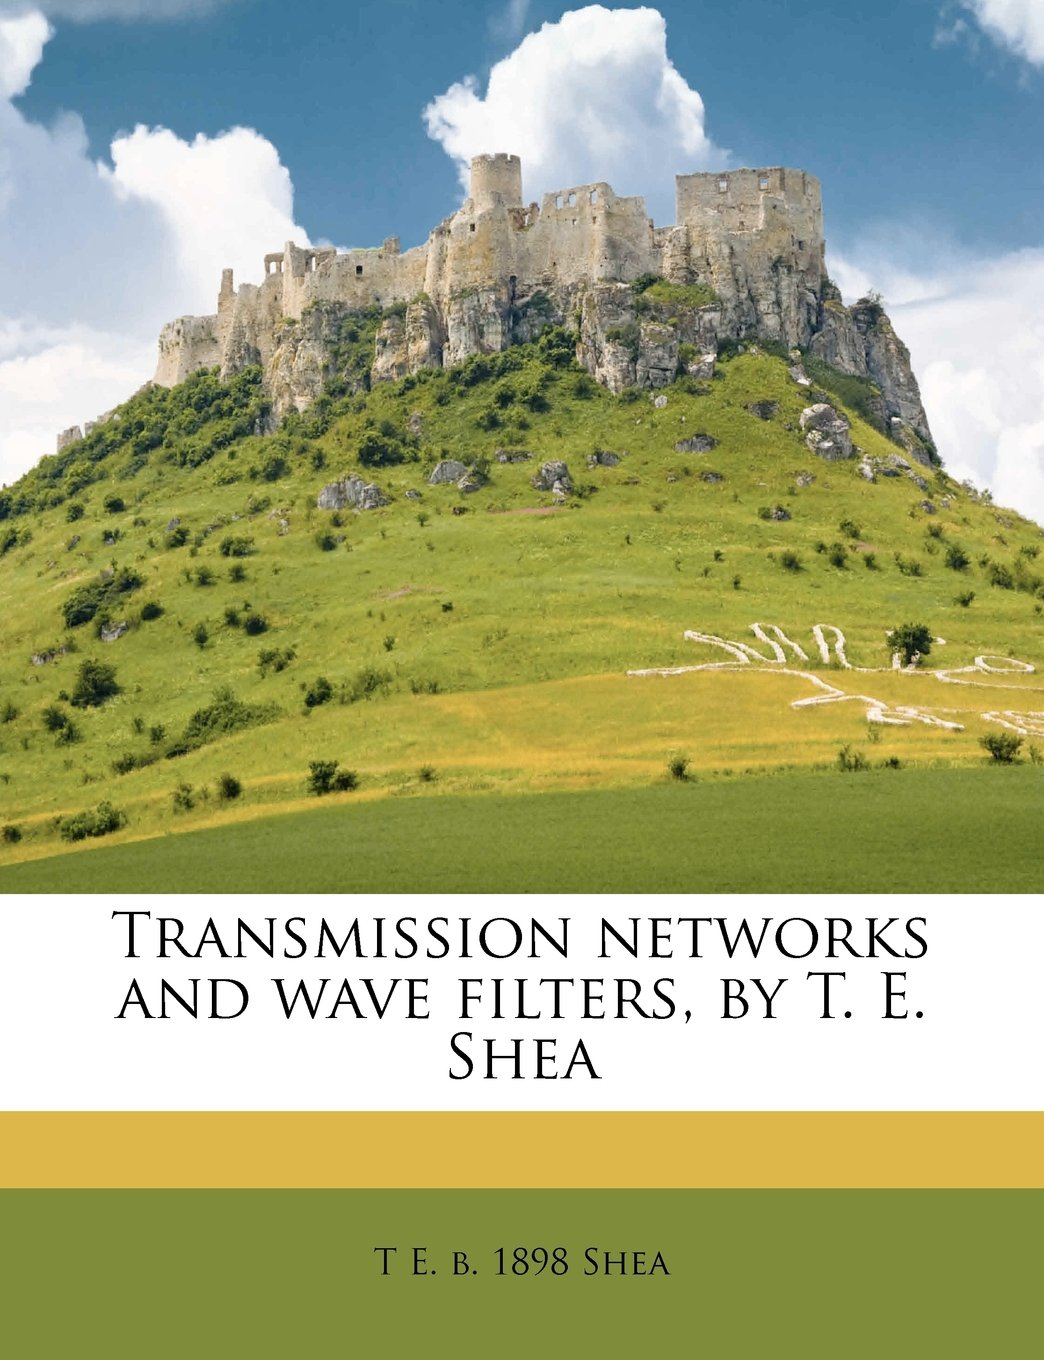 Download Transmission networks and wave filters, by T. E. Shea pdf